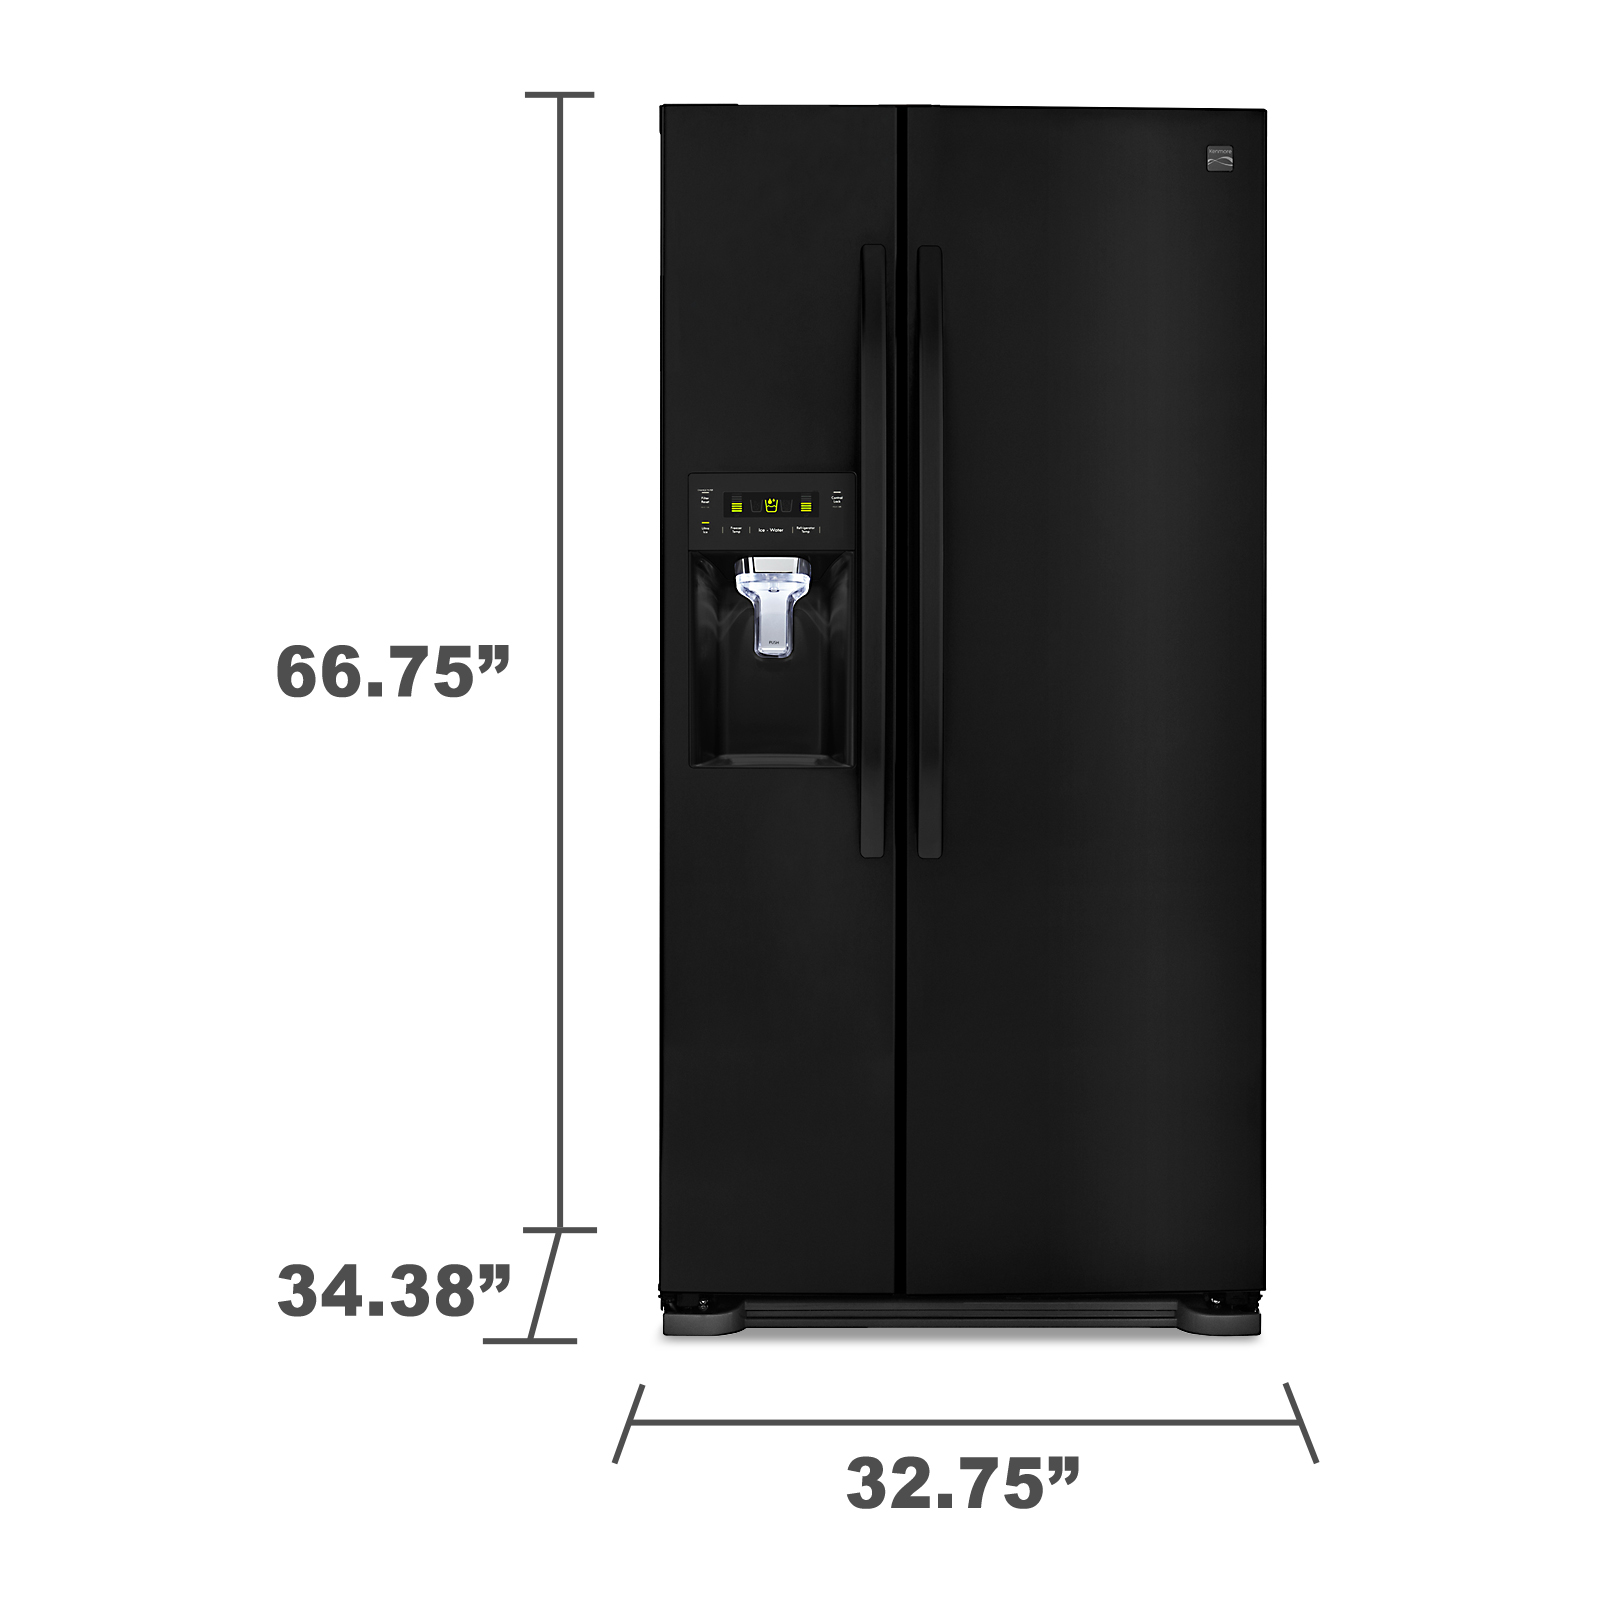 Kenmore 51819 21.9 Cu. Ft. Side-by-Side Refrigerator with Dispenser